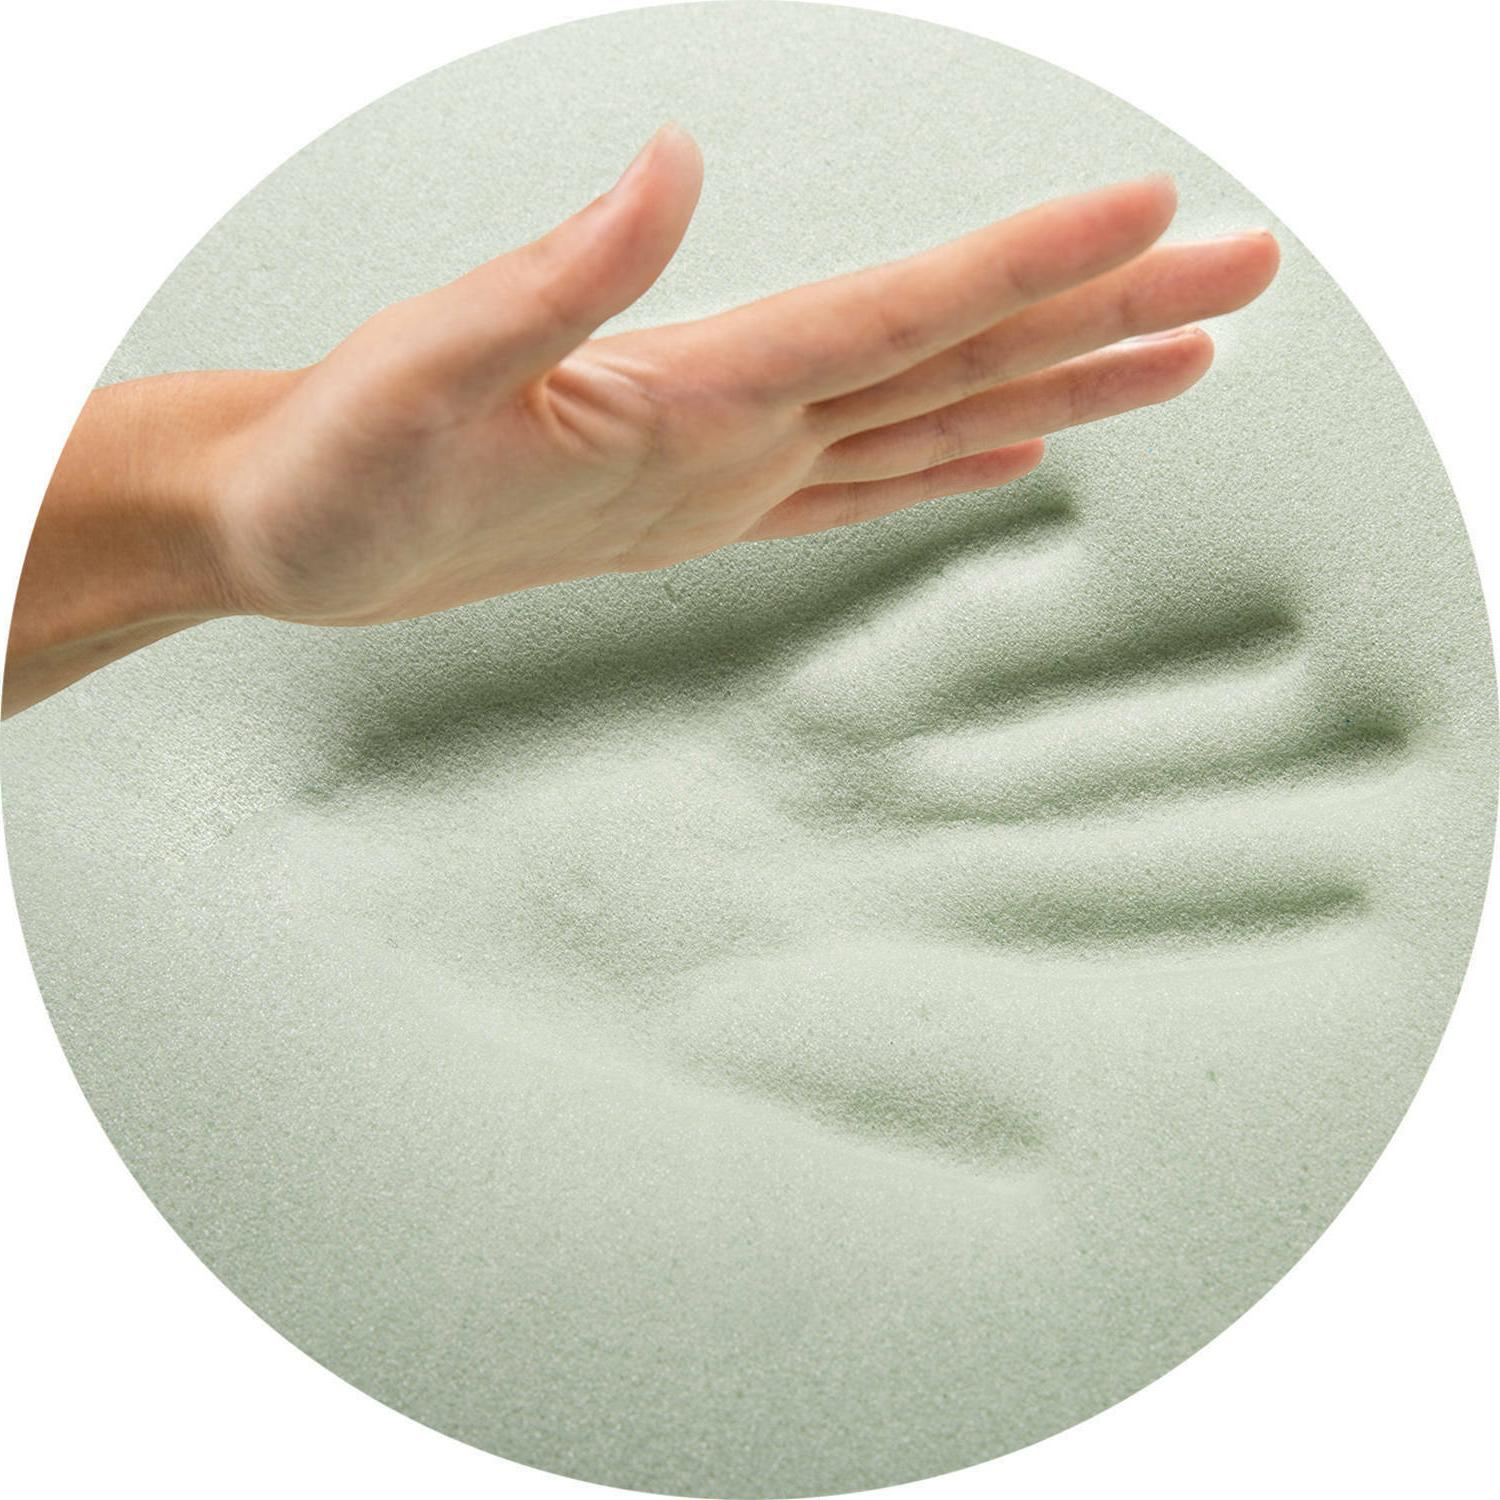 "Spa Sensations Gel Foam 1"" Mattress"